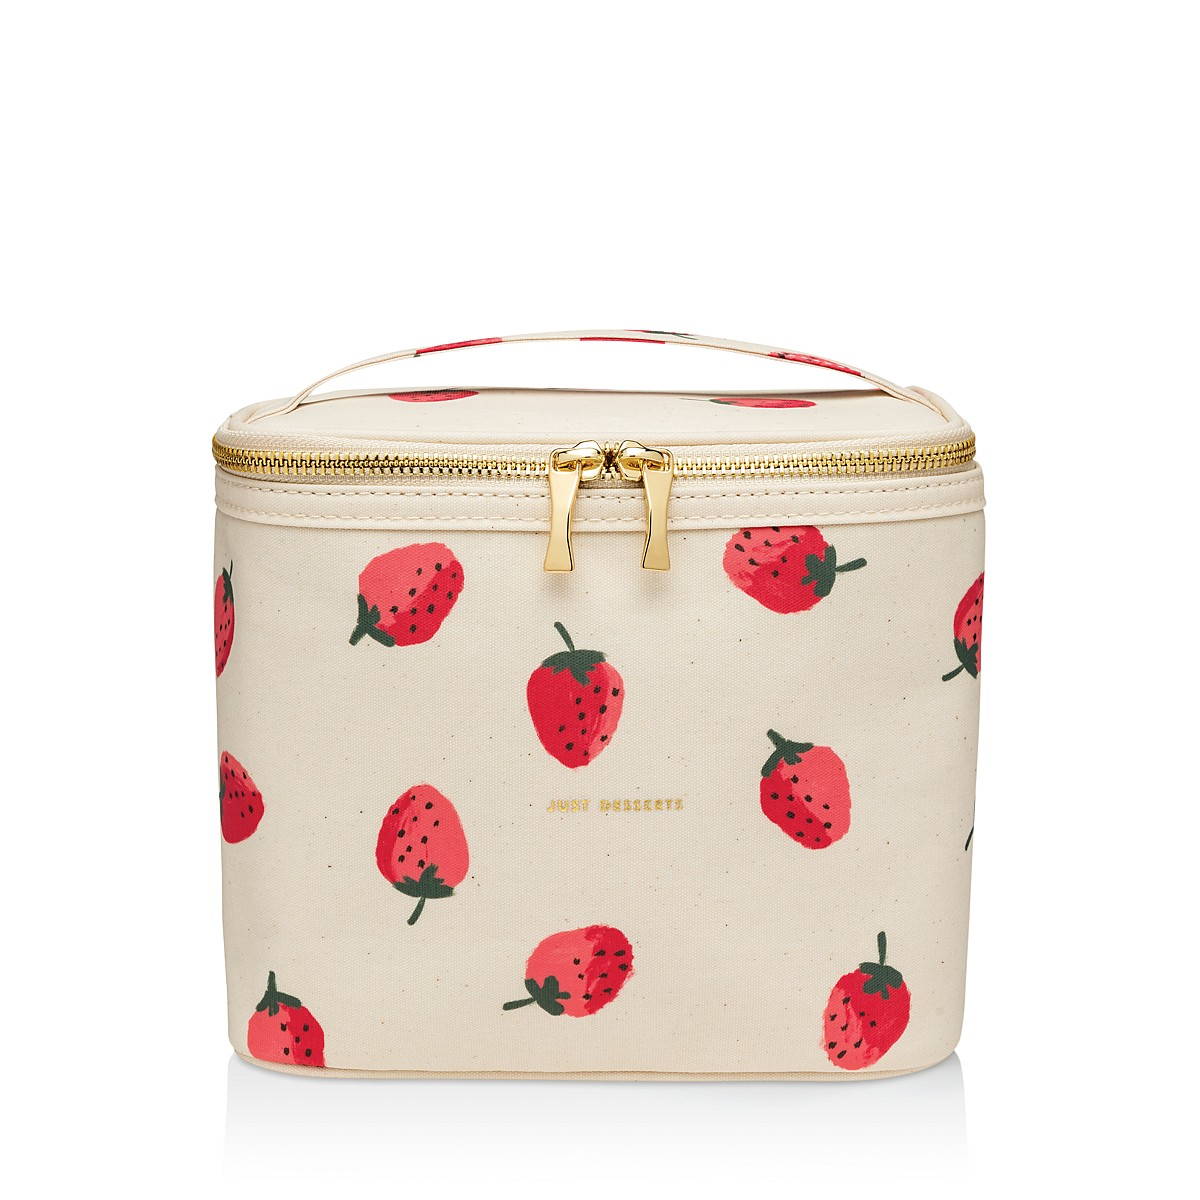 Lunch Bags for Women Kate Spade, strawberries lunch tote